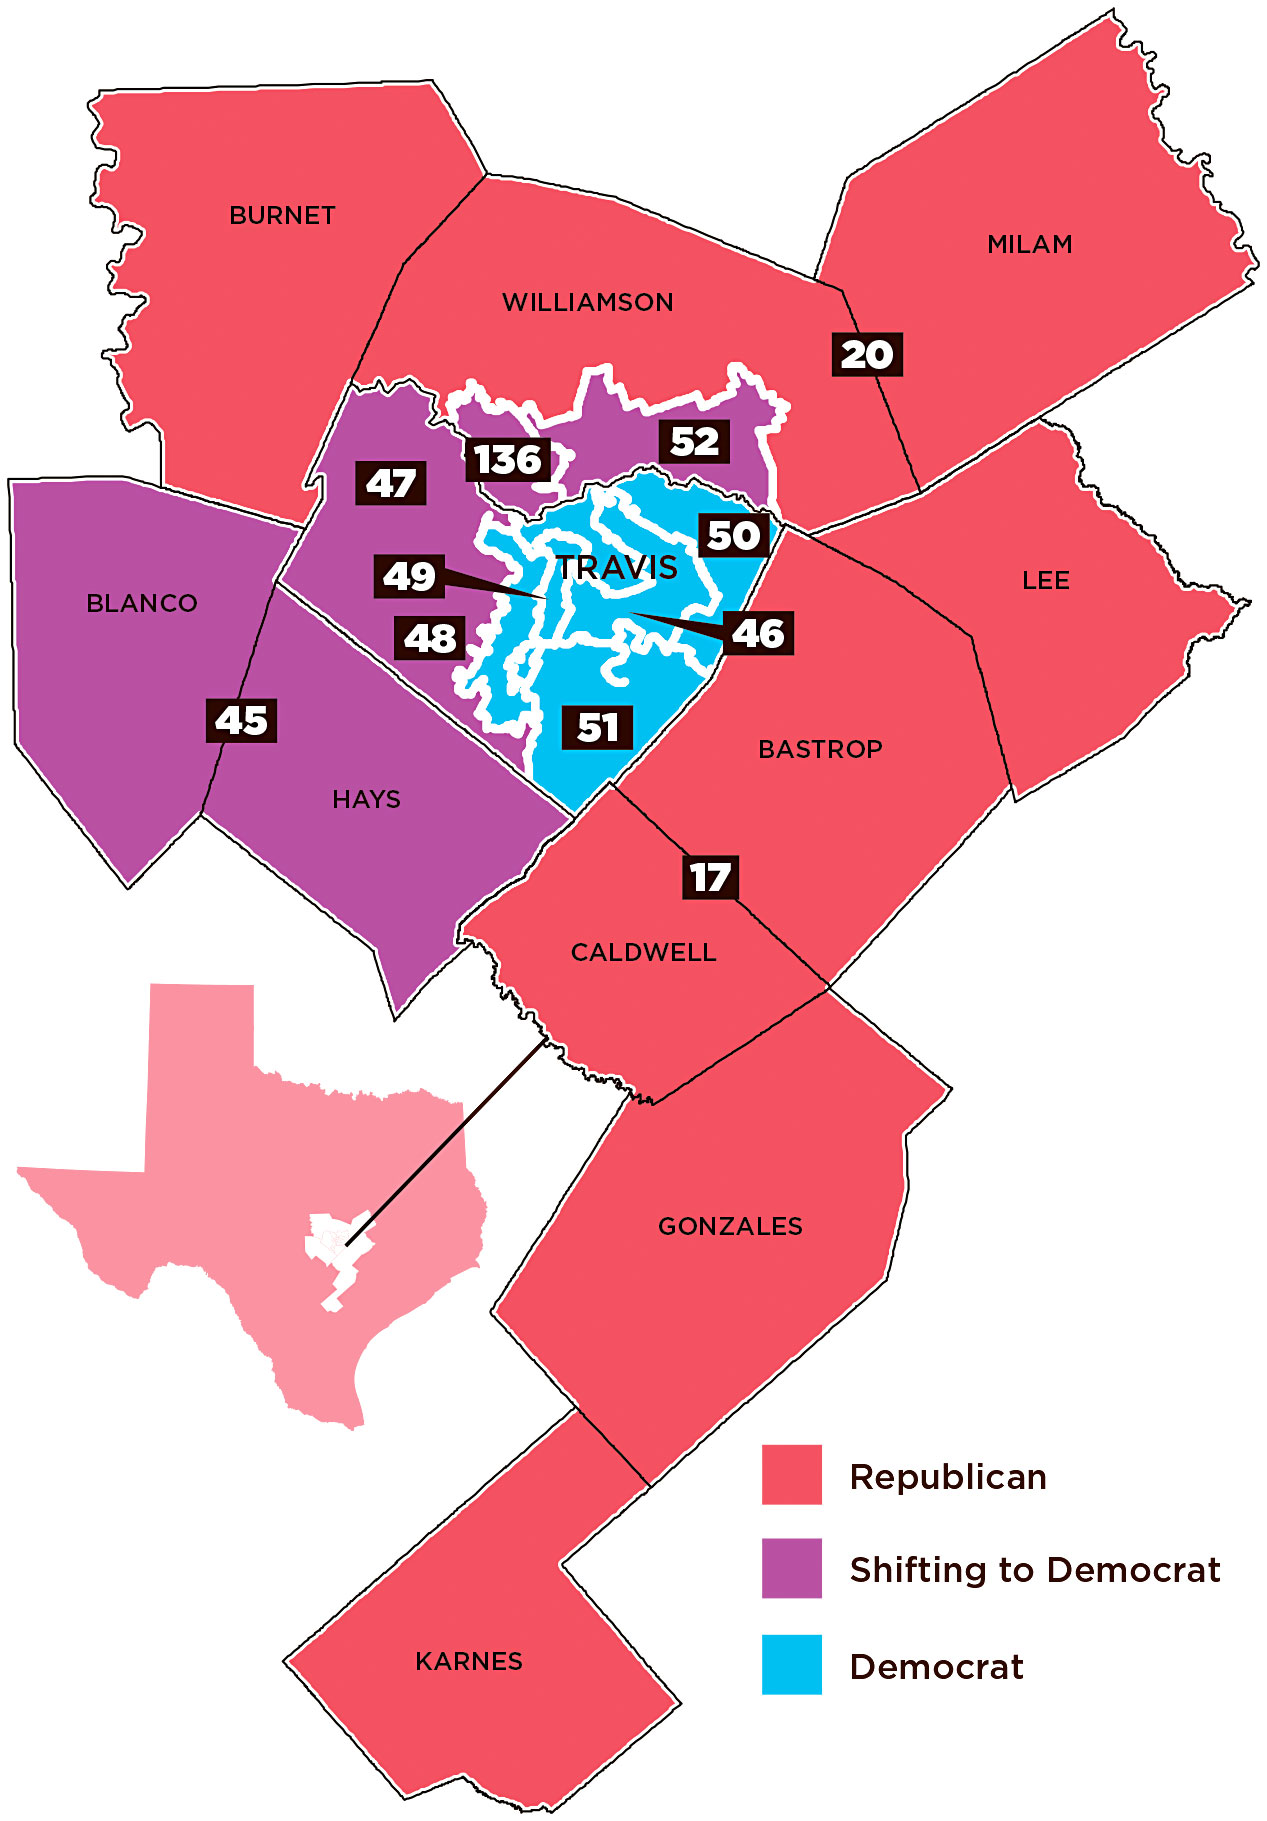 A Decade Of Democratic Gains In Central Texas Turning Red To